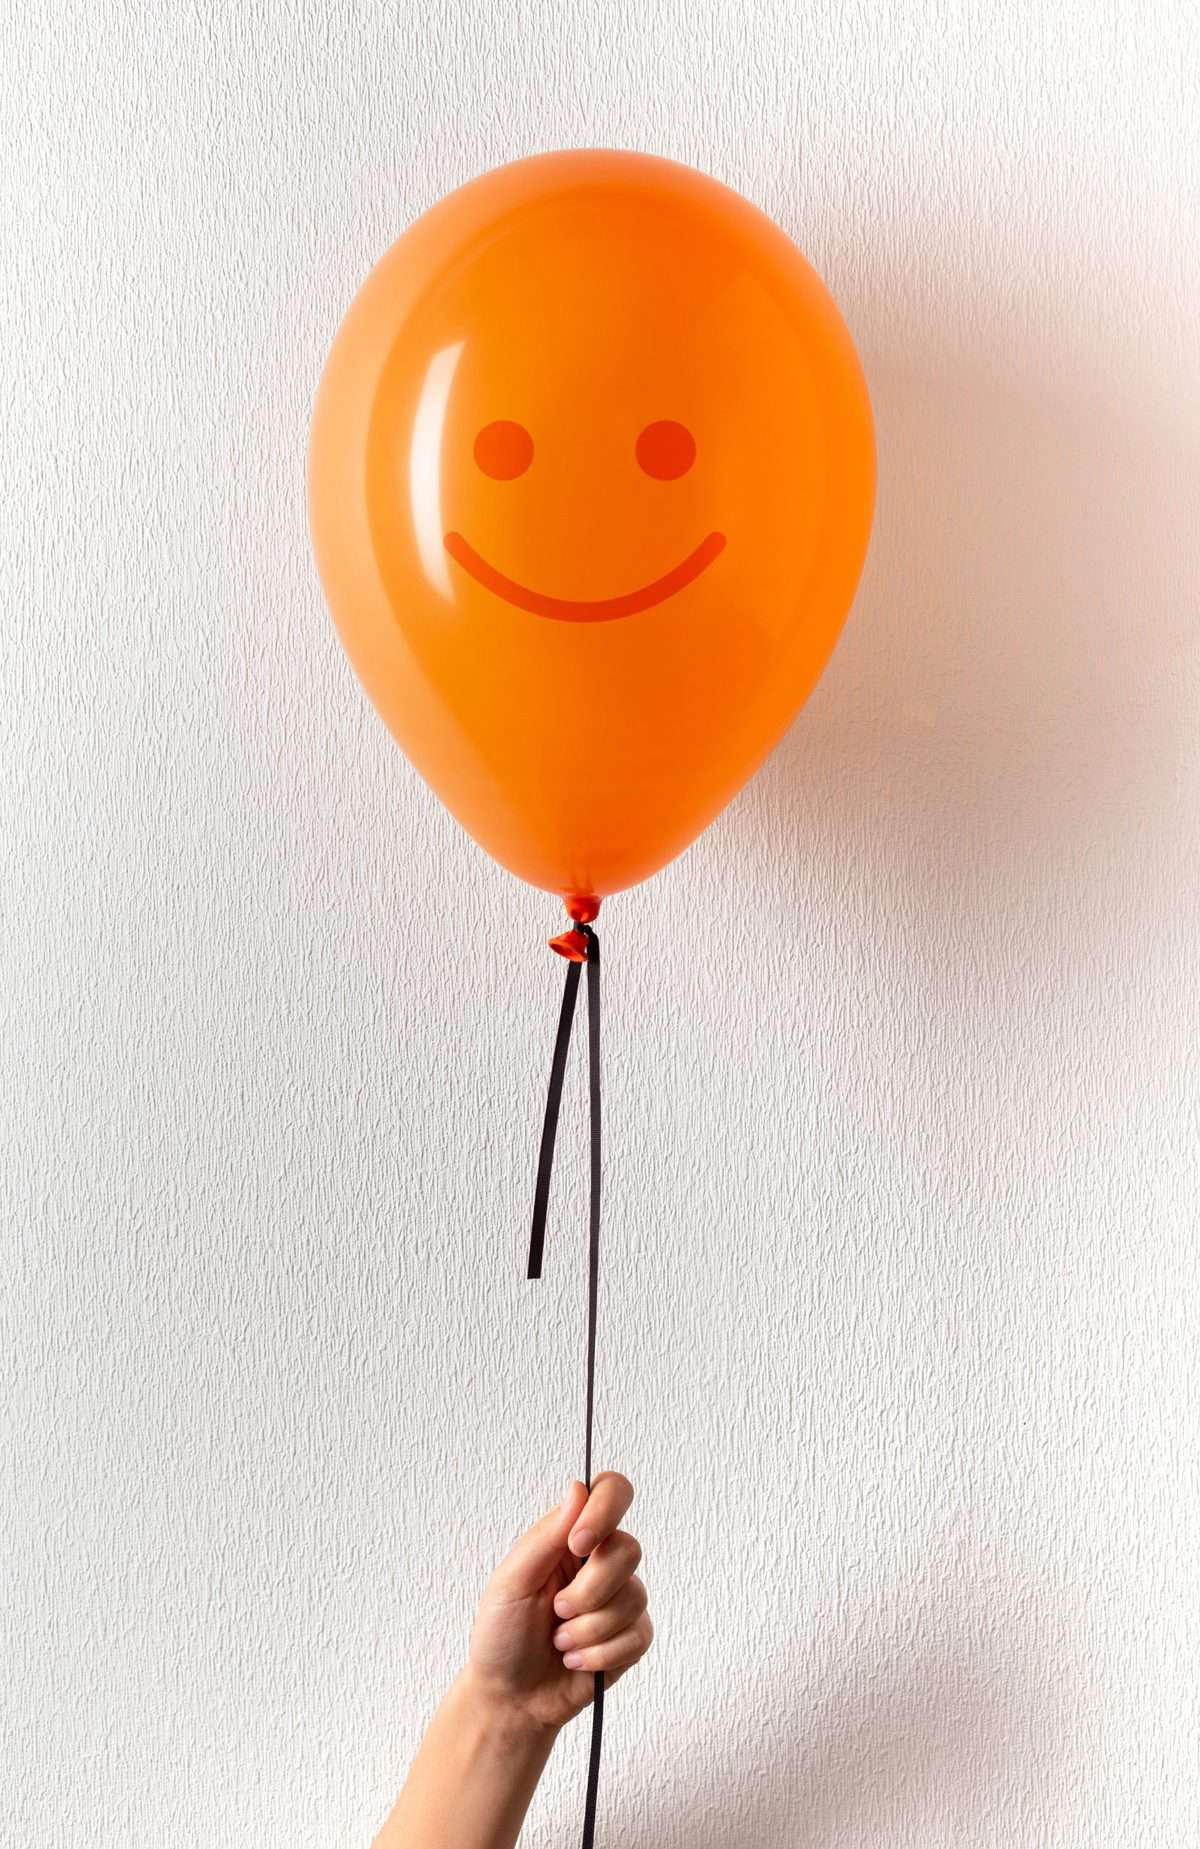 A hand holds an orange balloon, which has a smiley face drawn on it.